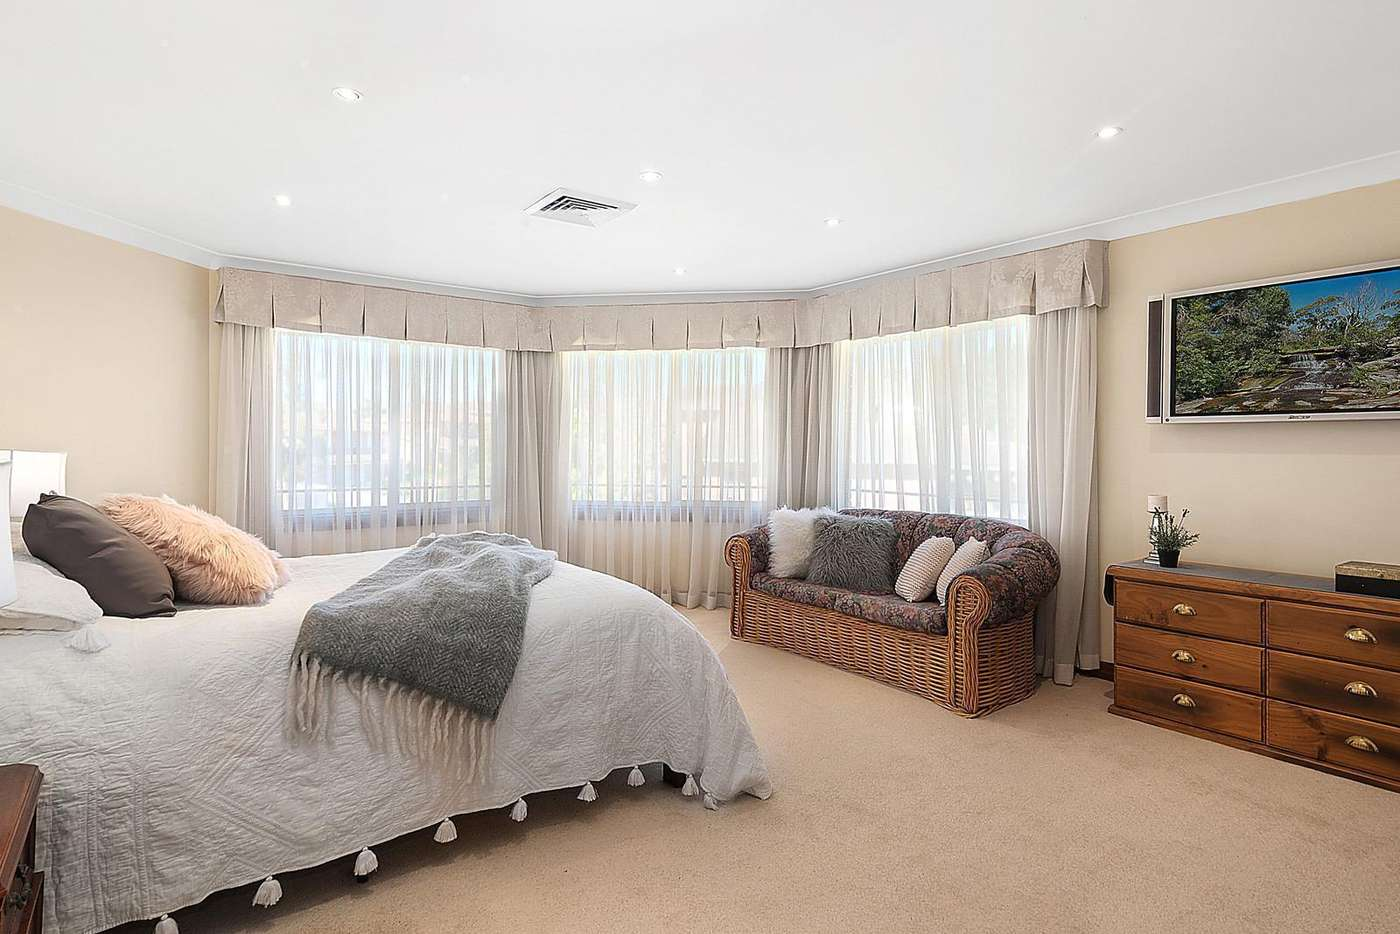 Seventh view of Homely house listing, 26 Roony Avenue, Abbotsbury NSW 2176